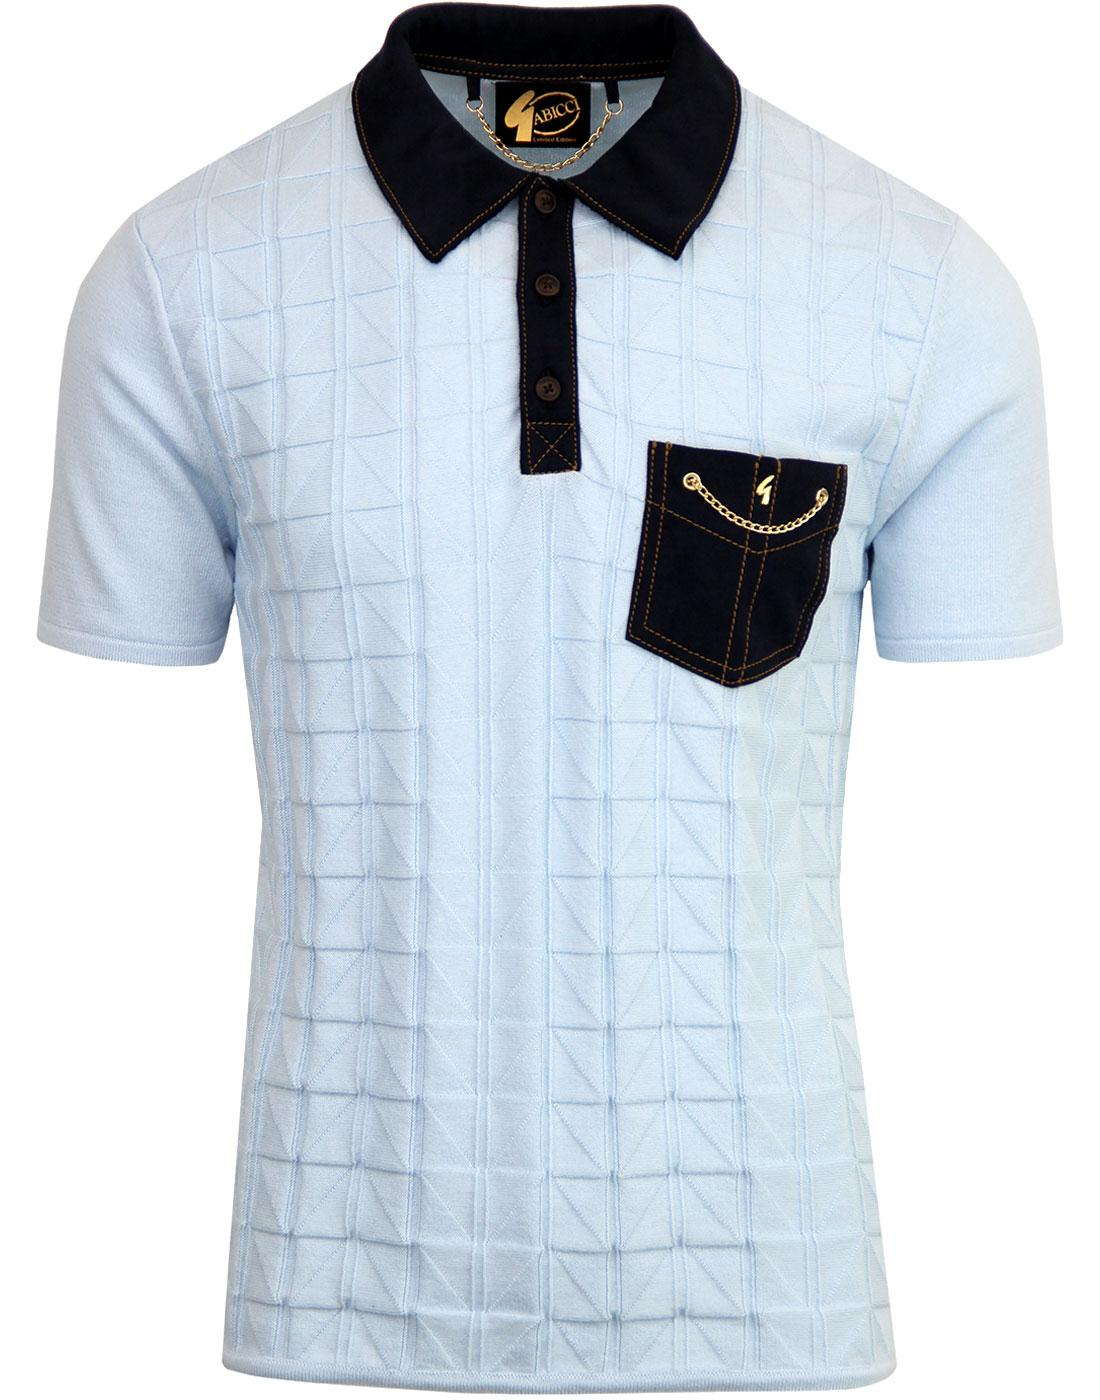 Woolston GABICCI VINTAGE Ltd Edition Knitted Polo